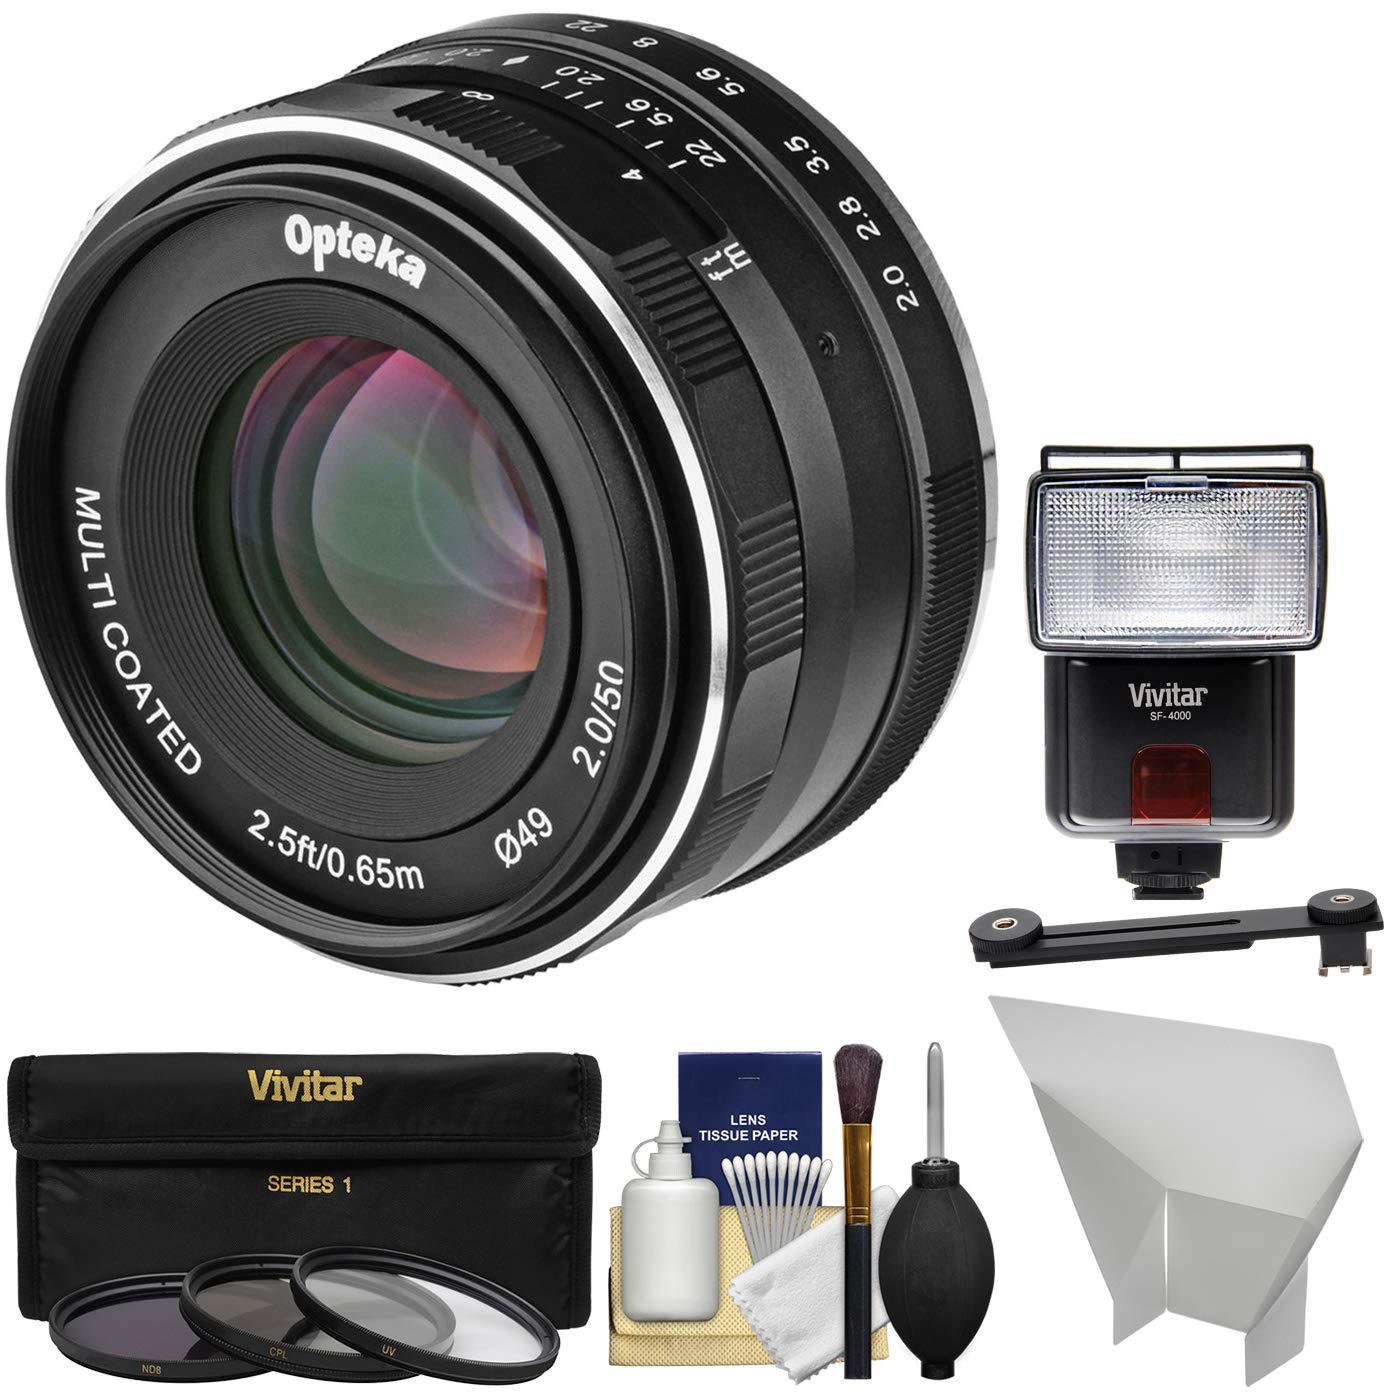 Opteka 50mm f/2 HD MF Prime Lens with 3 Filters + Flash + Diffusers Kit for Sony Alpha E-Mount Digital Cameras by Opteka (Image #1)